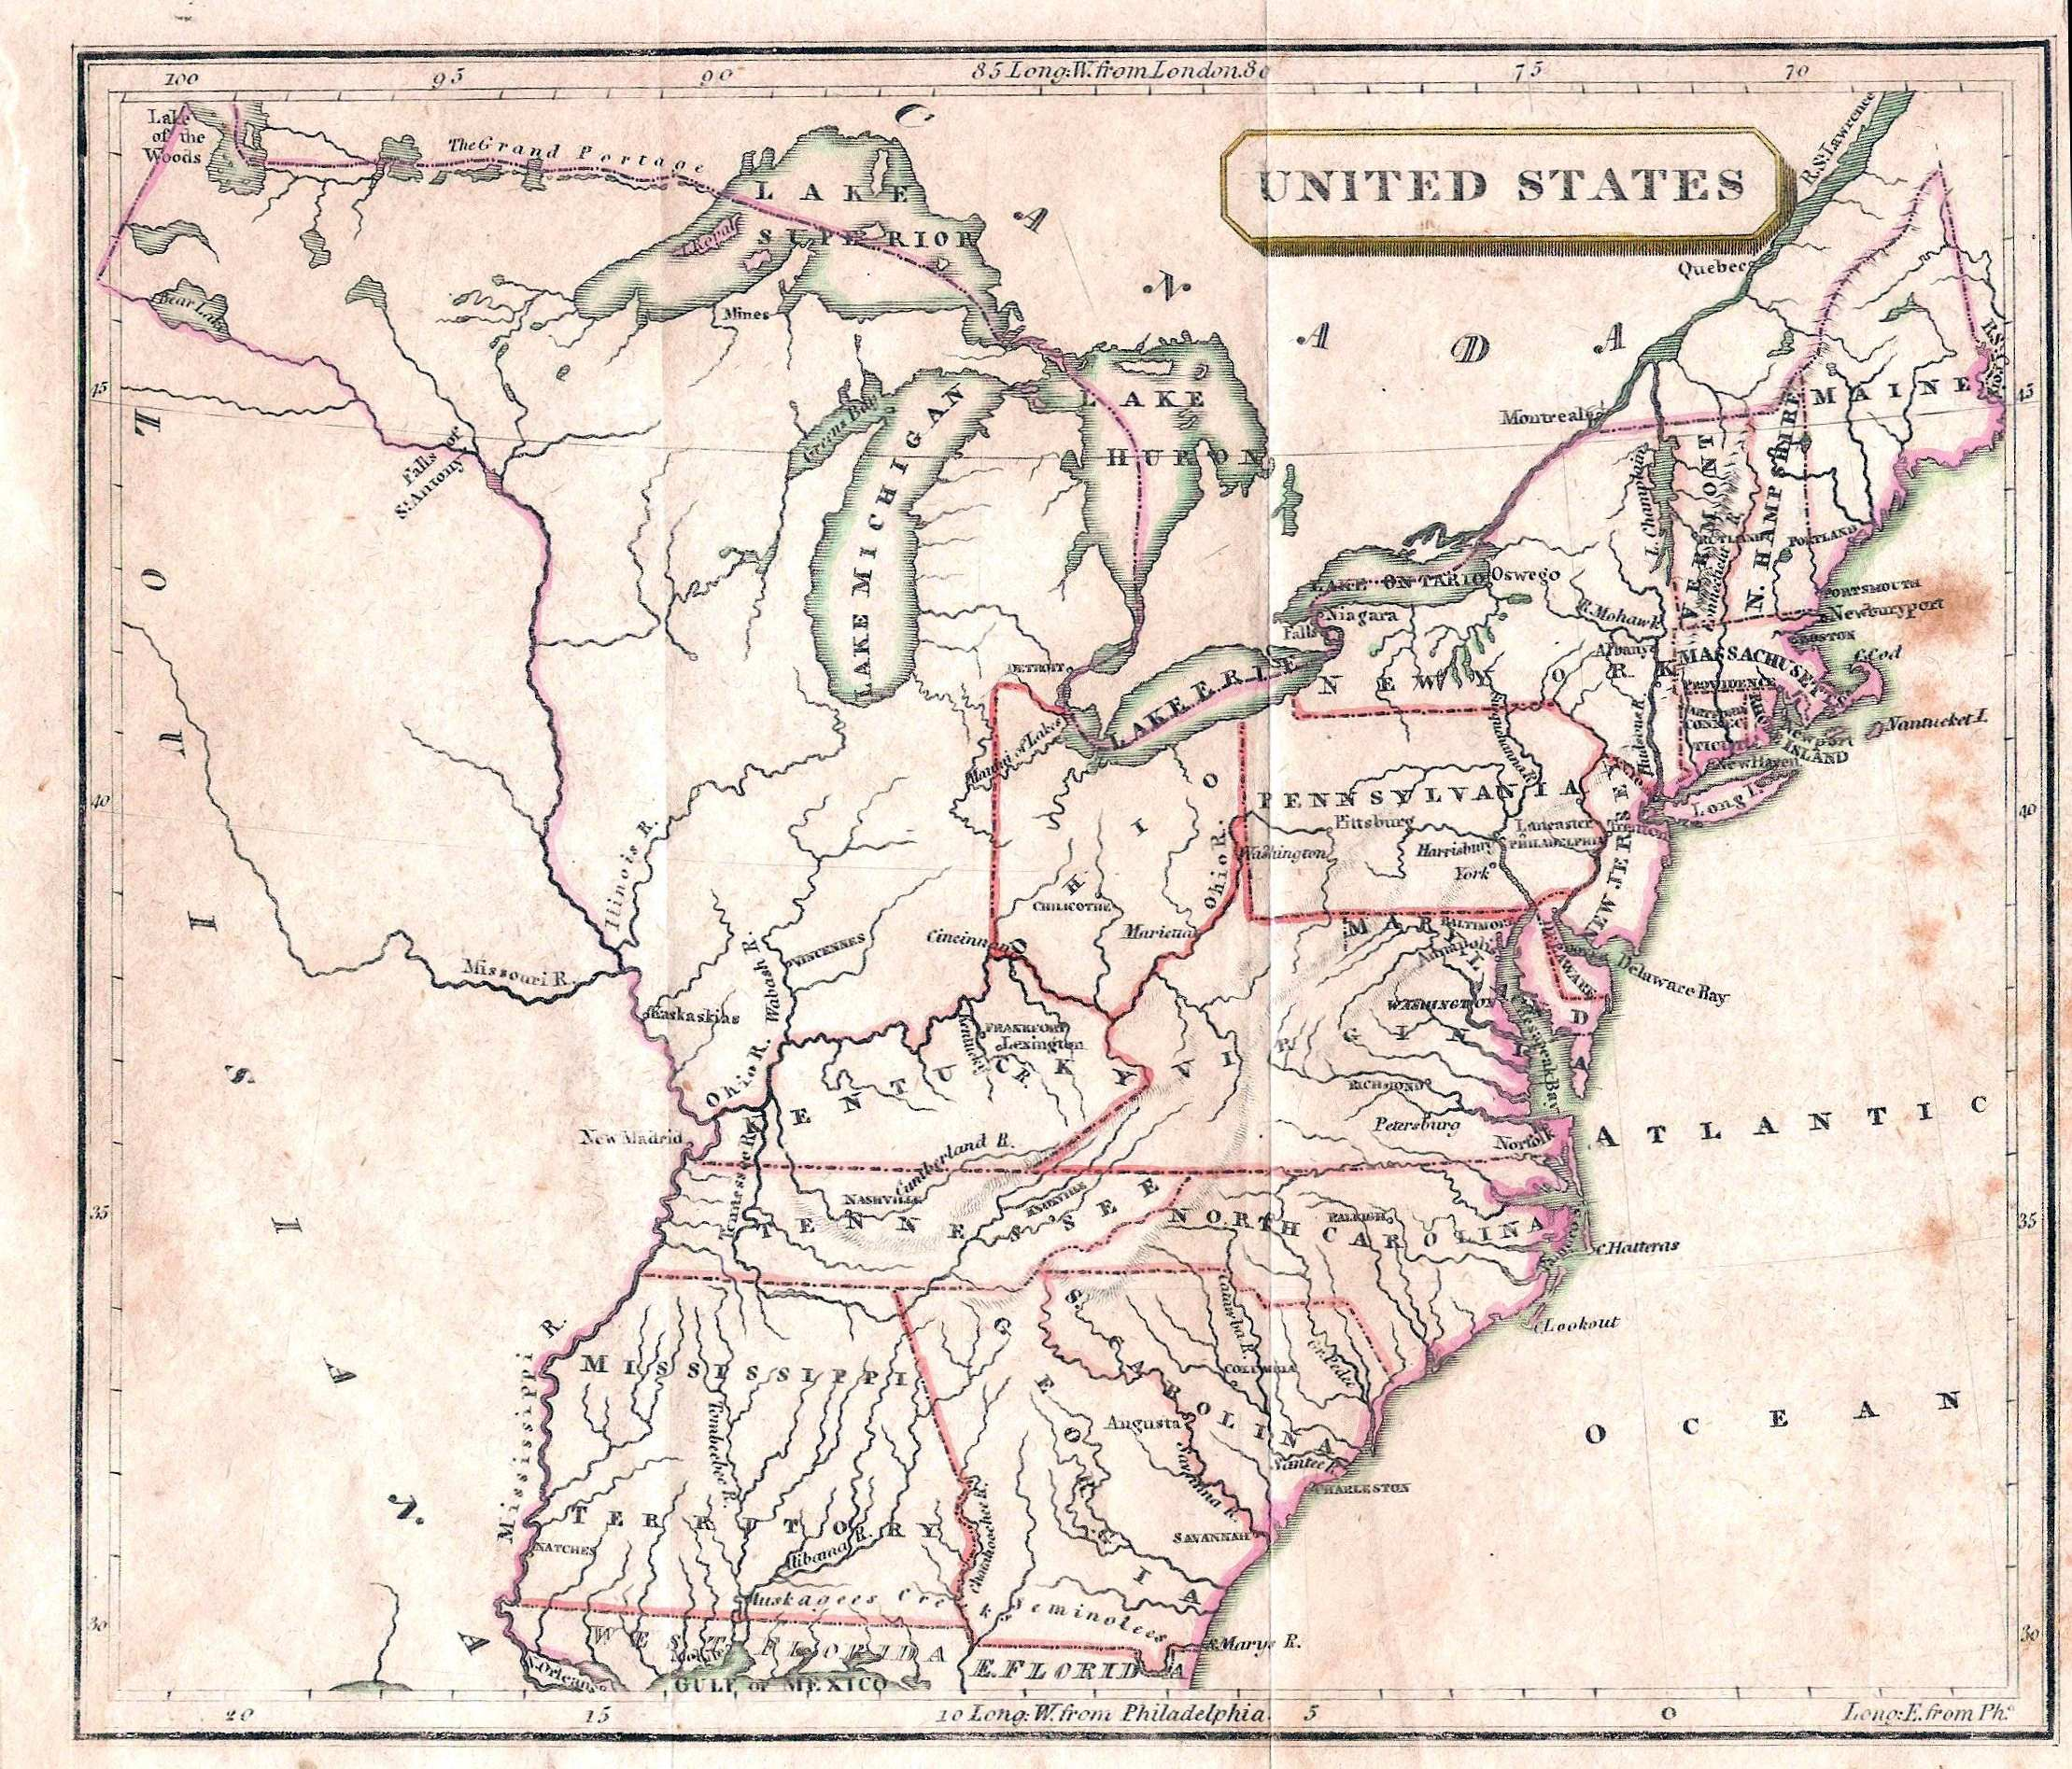 1803 3 united states this anonymous and undated small map probably dates between 1803 ohio shown as a state and 1812 but not louisiana